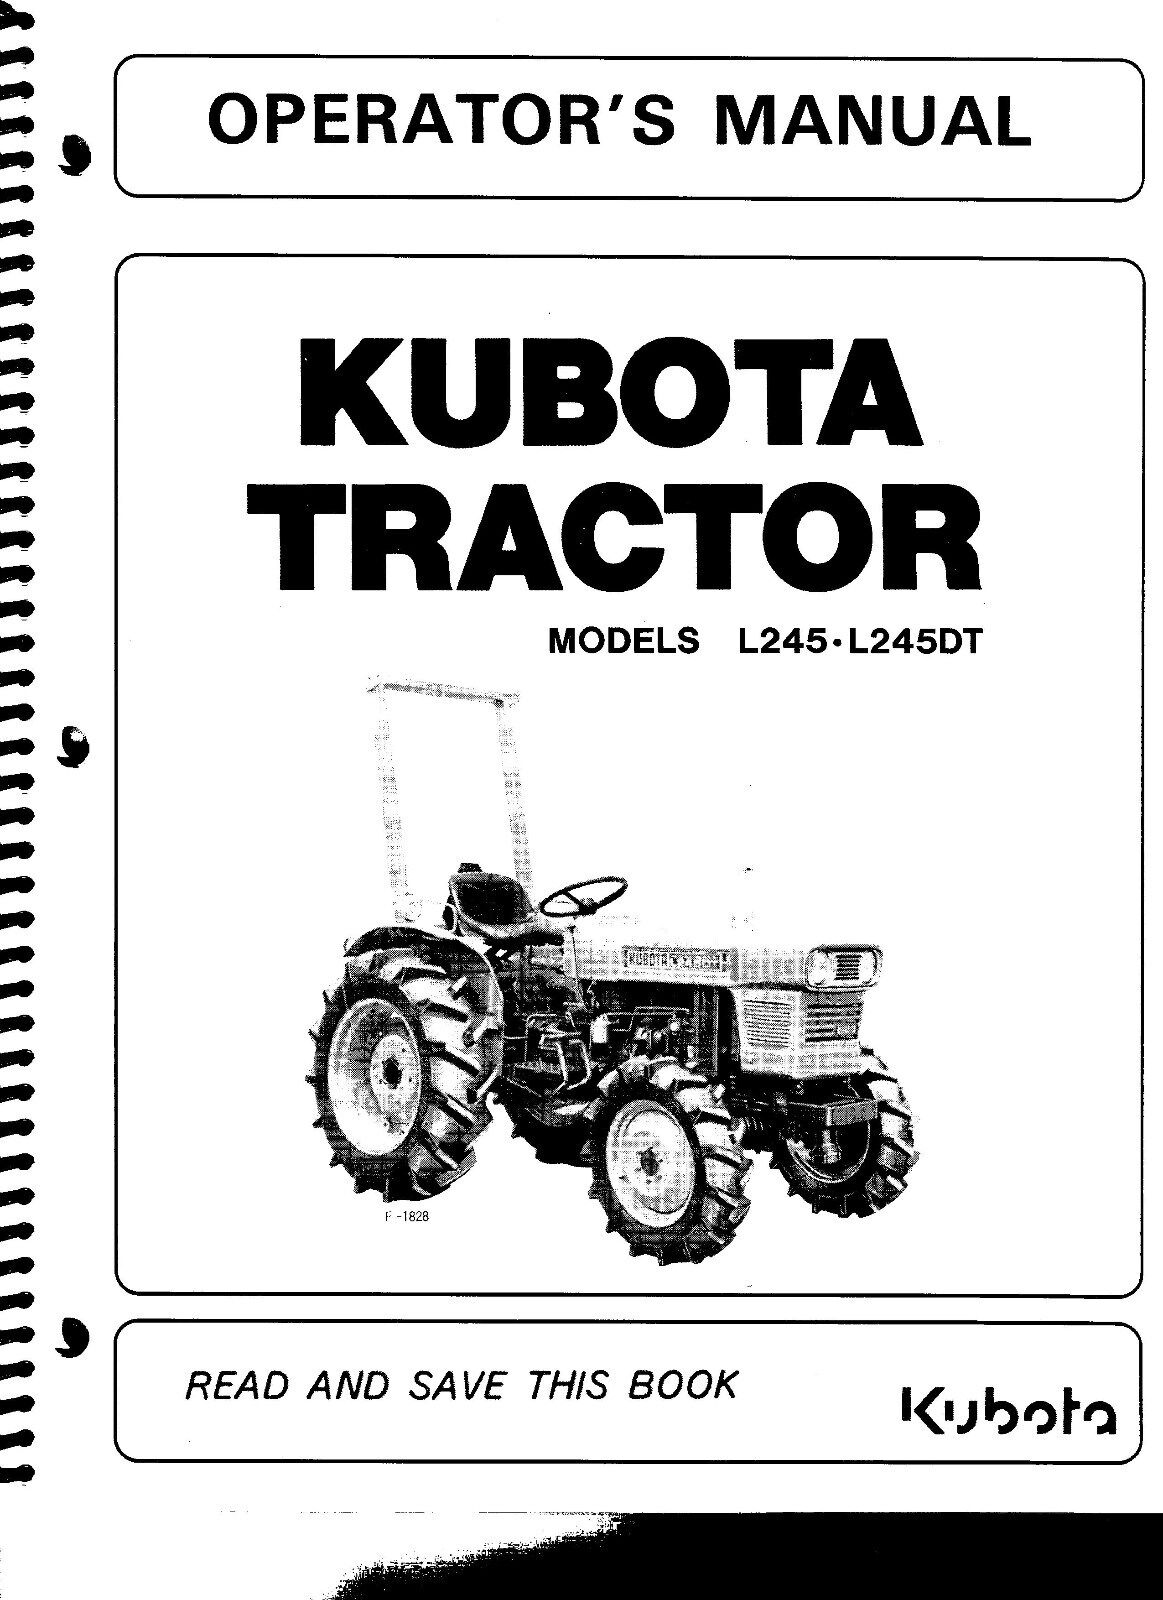 Kubota L245 Tractor Operators Manual W Wiring Diagram Maintenance Vintage New Holland Lawn Norton Secured Powered By Verisign